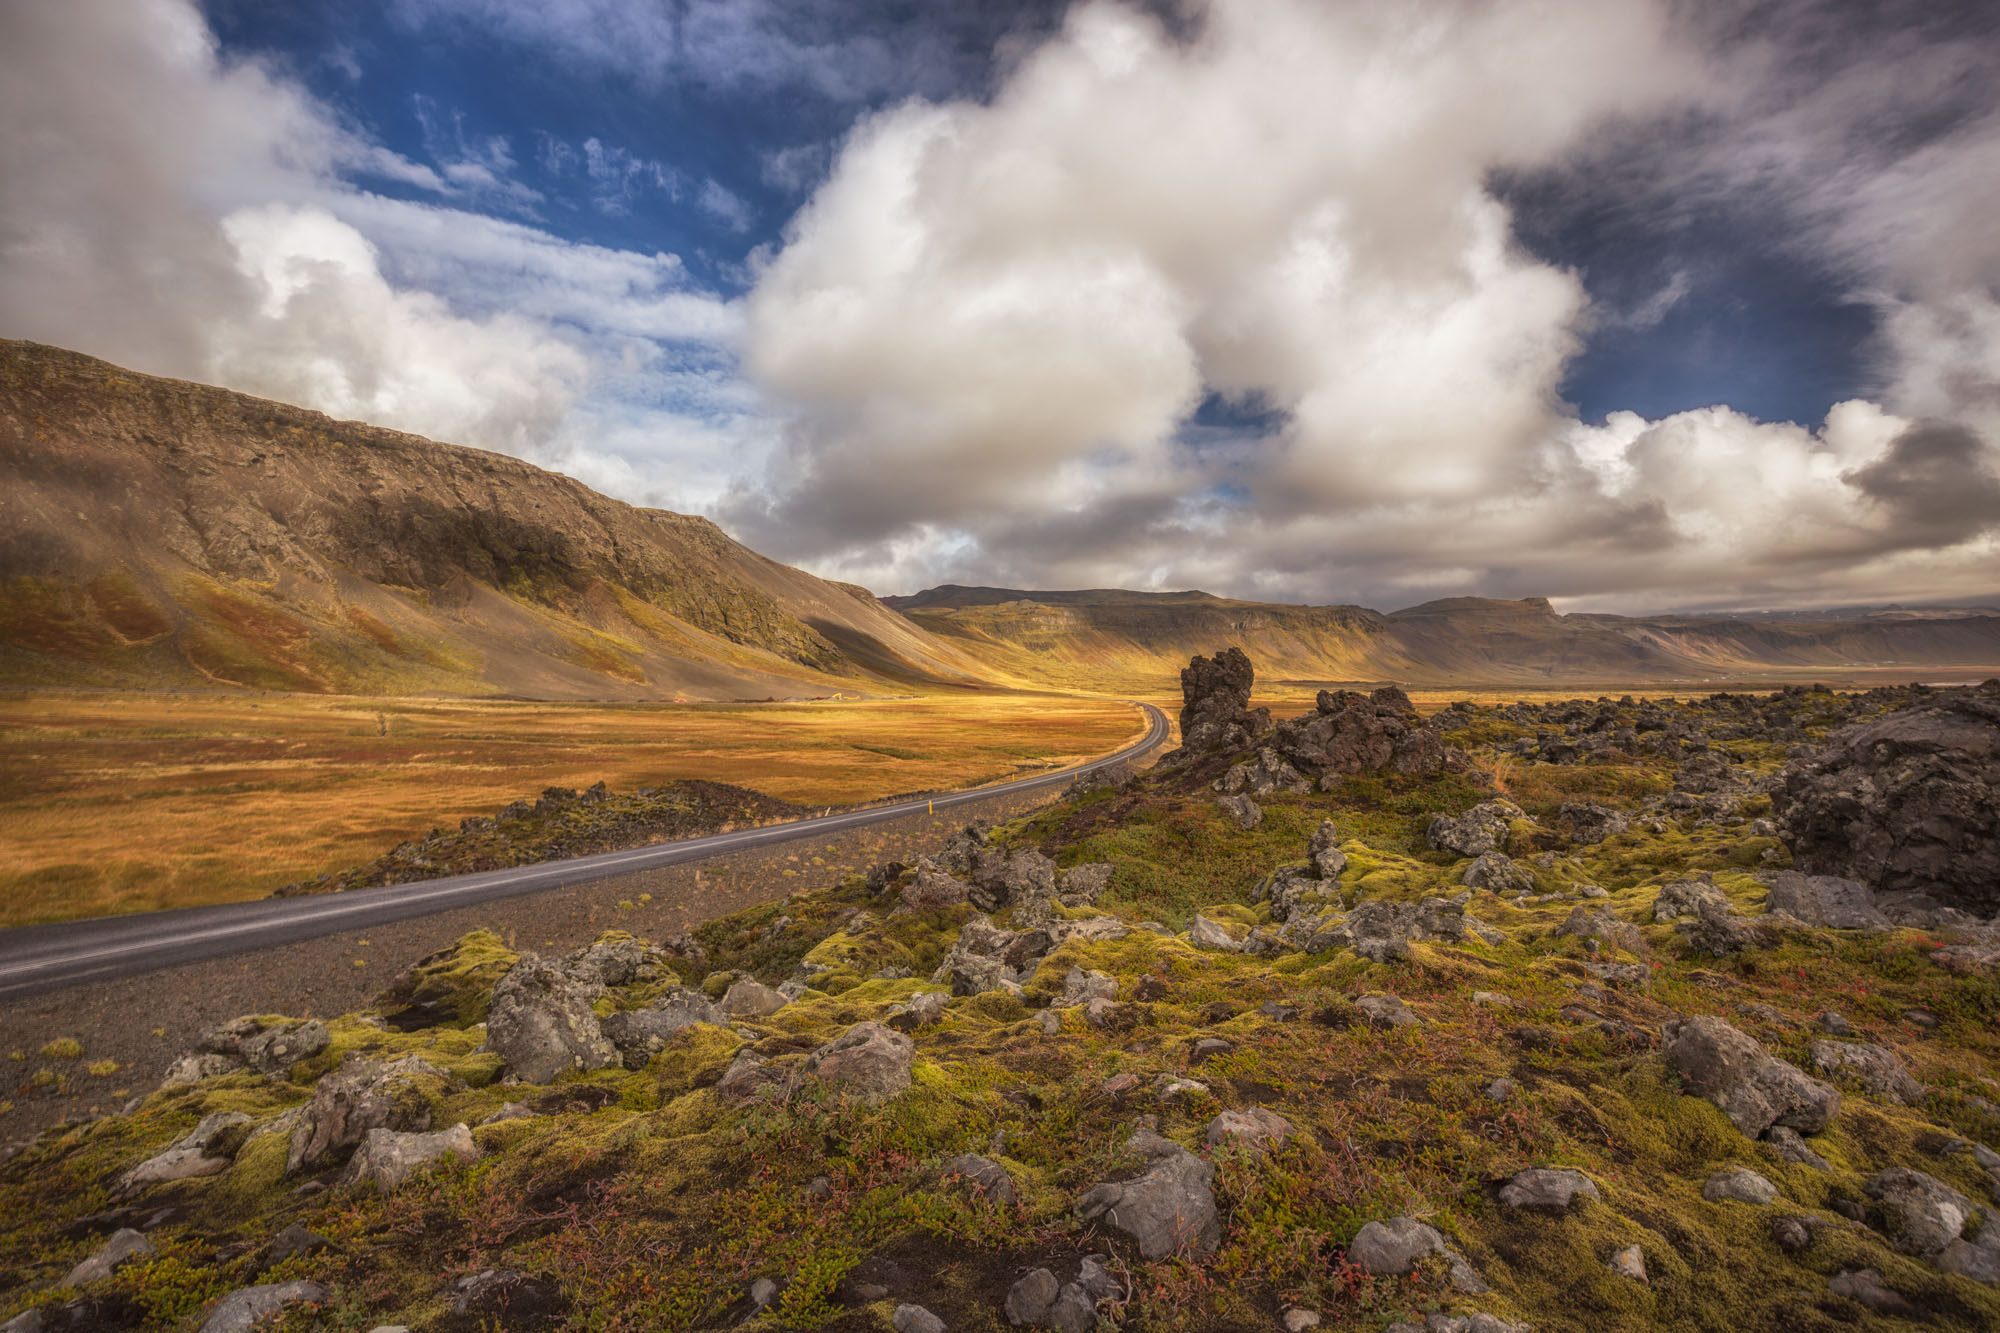 antonyz long exposure landscape photograph of a roadway cutting through the wild countryside in Iceland